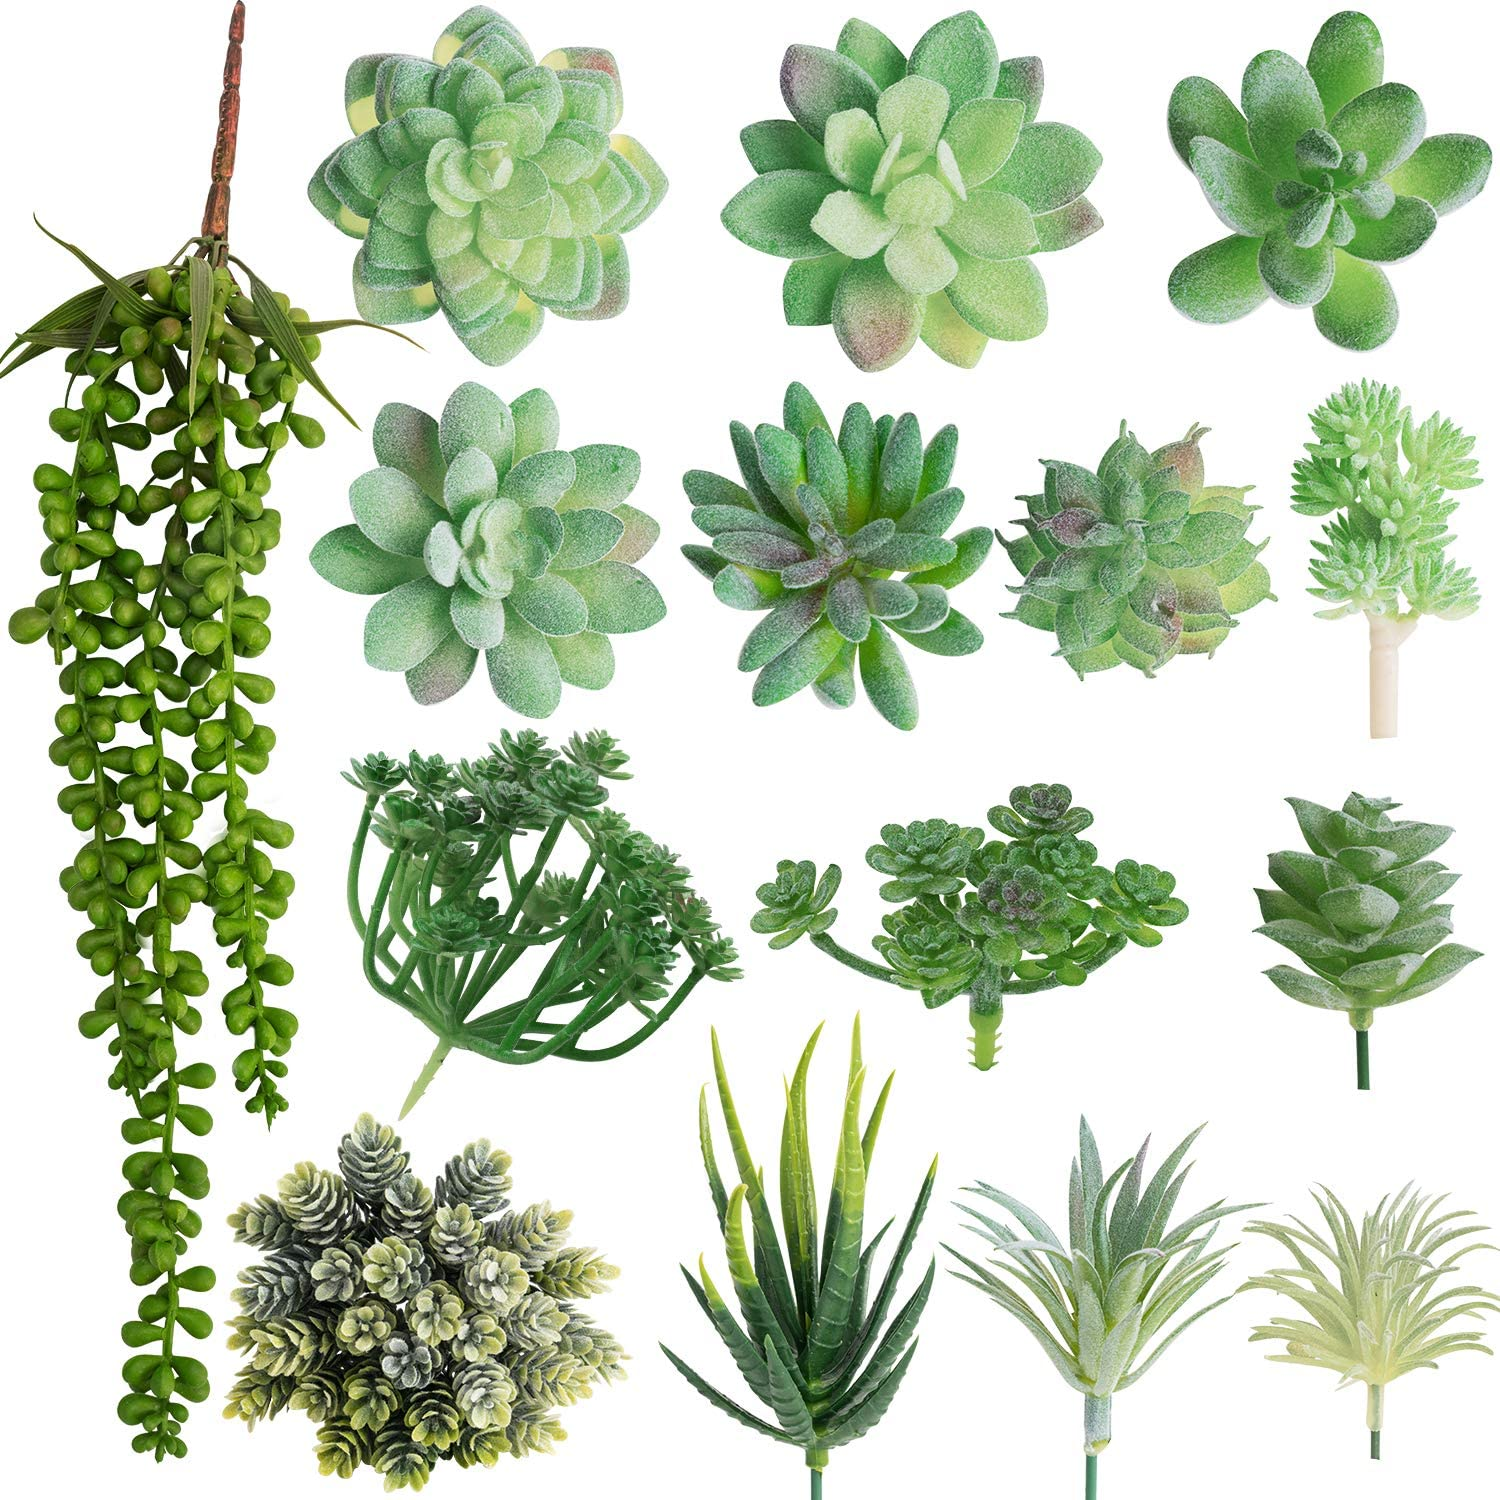 MoonLa Artificial Succulent Plants Assorted 15Pcs Textured Faux Succulent Picks Unpotted Fake Succulent Plants Faux Aloe Cactus String of Pearls Succulent Echeveria Agave Floral Arrangement Accent